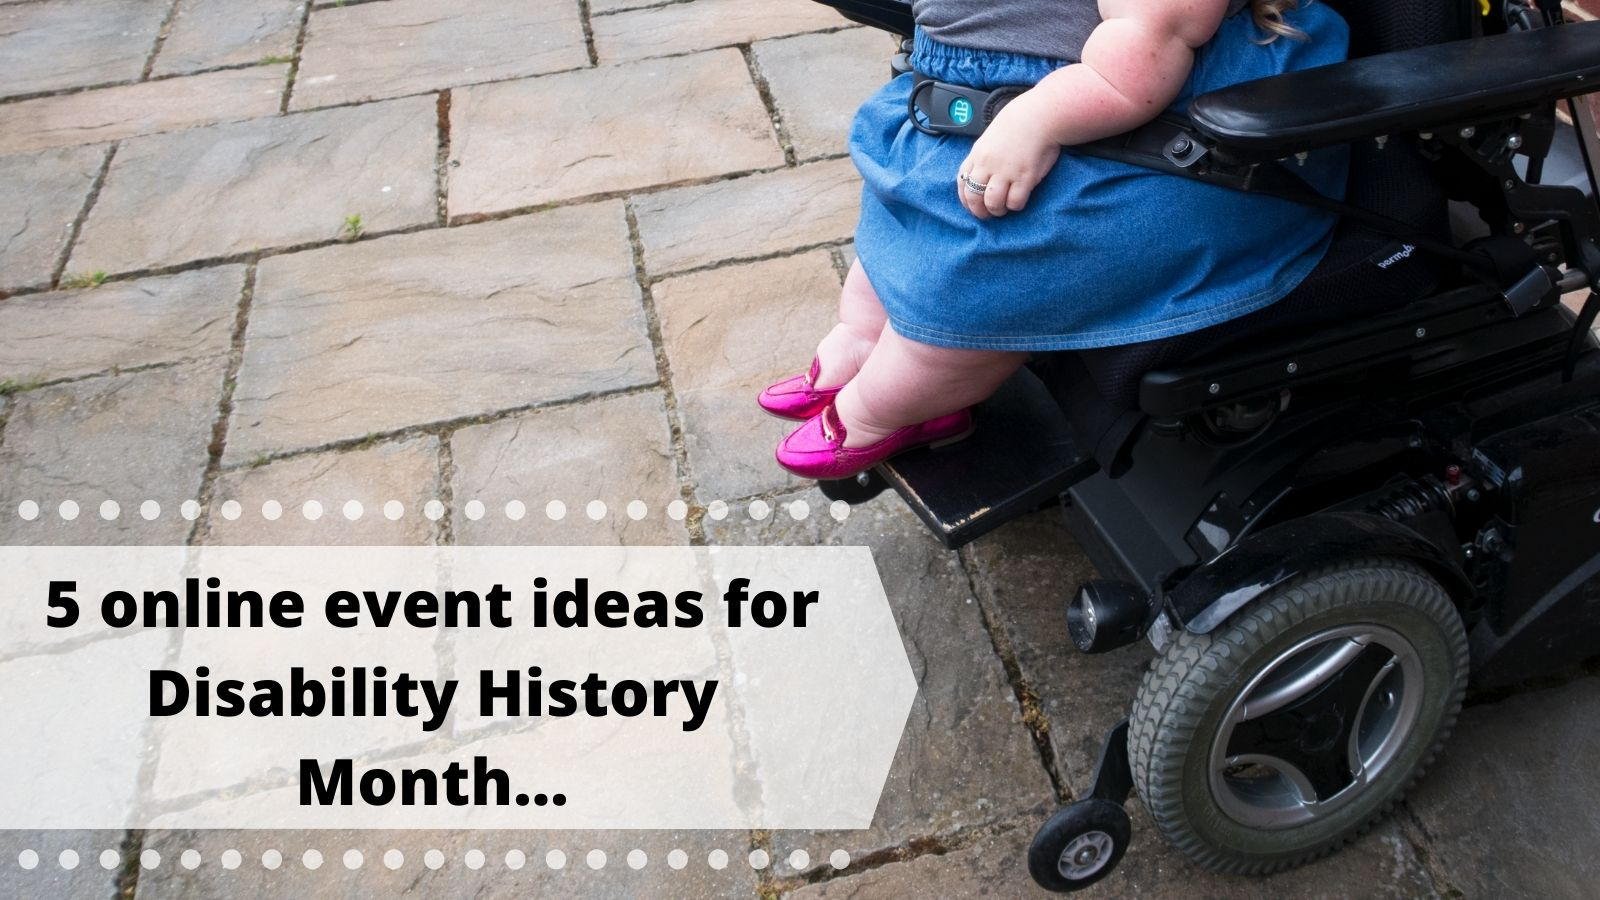 5 online event ideas for disability history month